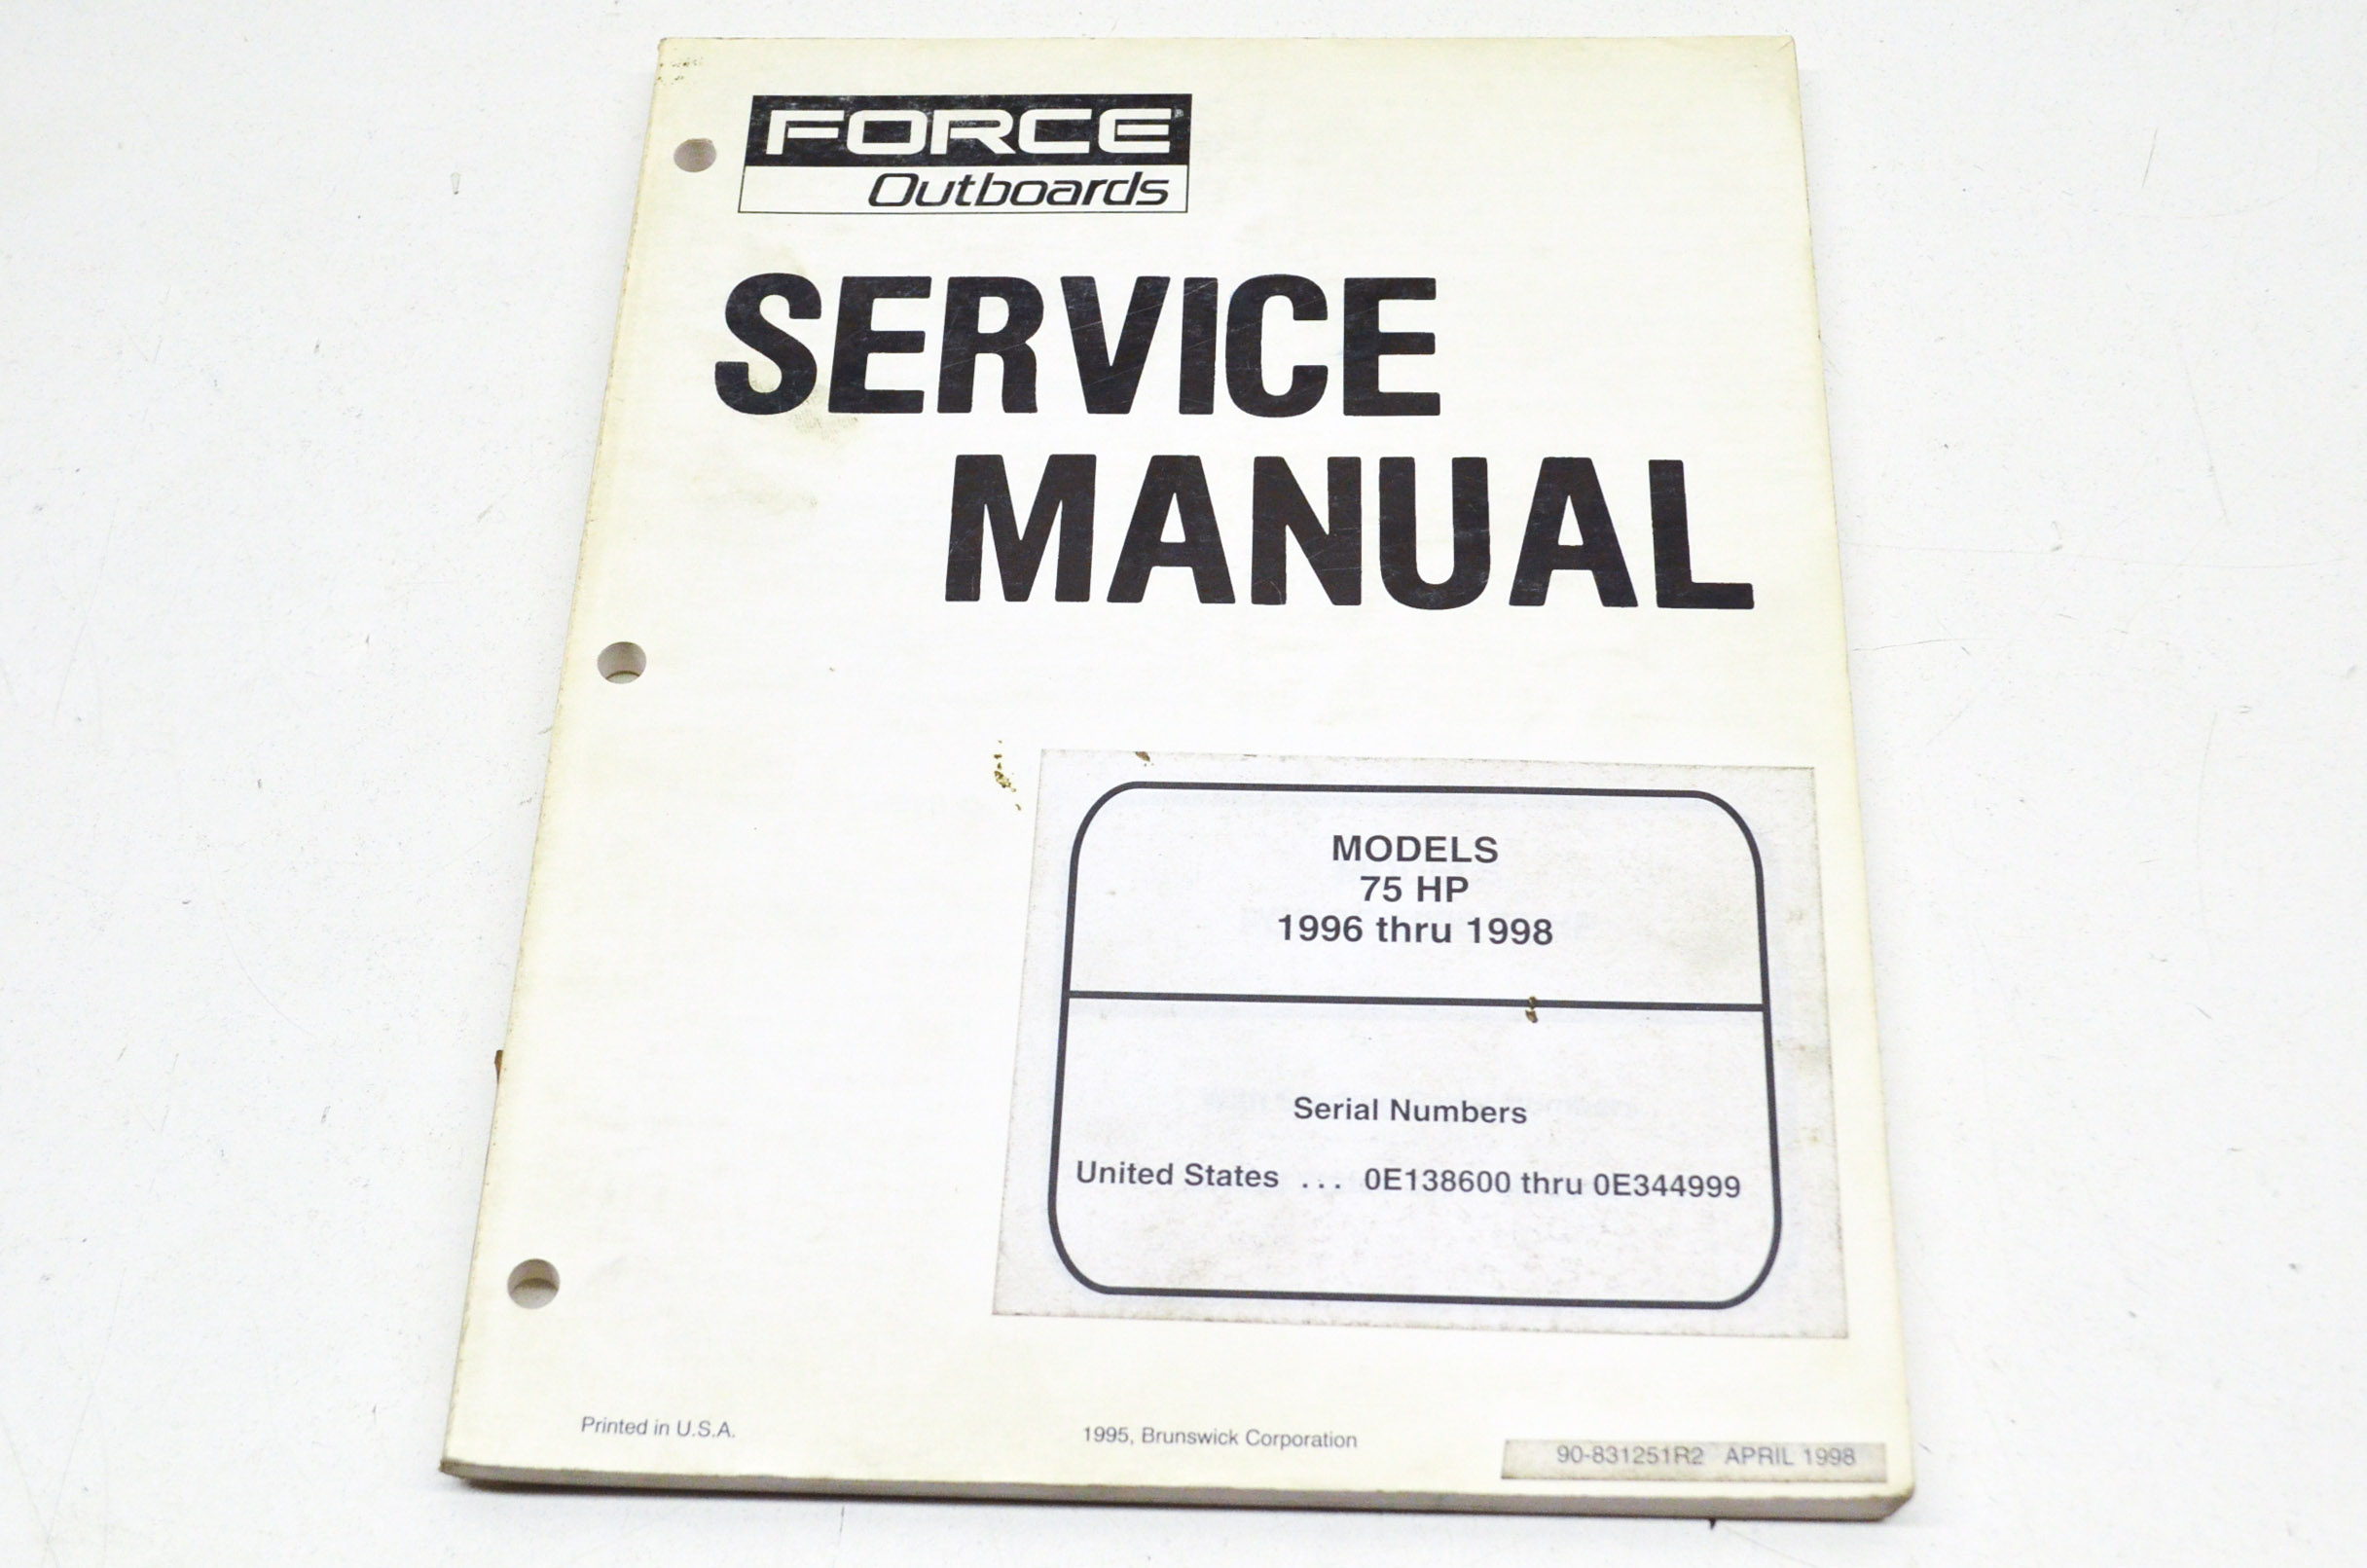 Force Outboards 90-831251R2 75 HP 1996 thru 1998 Service